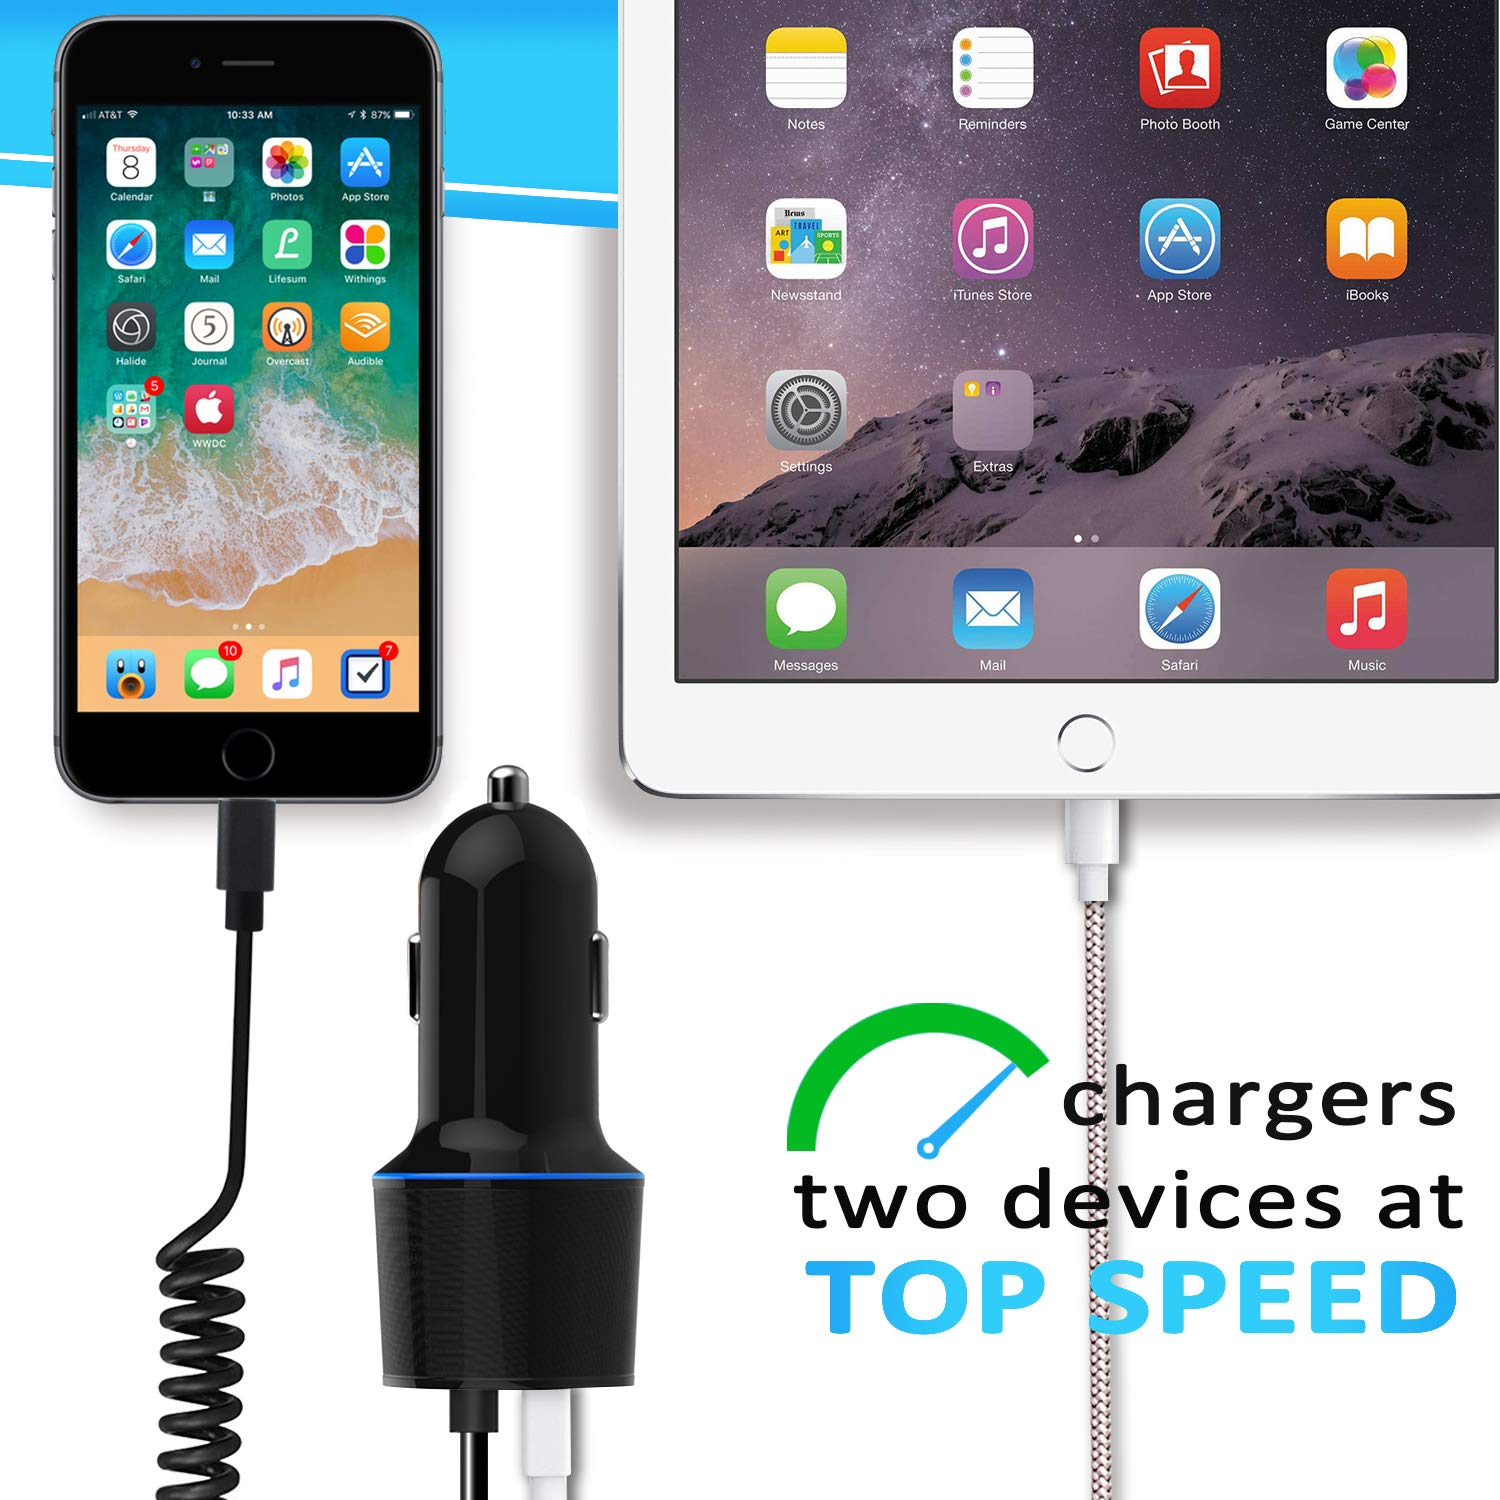 7//6 6s //6s,iPad More,Sngg 4.8A Rapid Phone Car Charger 5ft Coiled Charging Cable,More Extra USB Port Black iPhone Car Charger 8//8 Plus Car Charger Compatible iPhone XR//XS//MAX//X